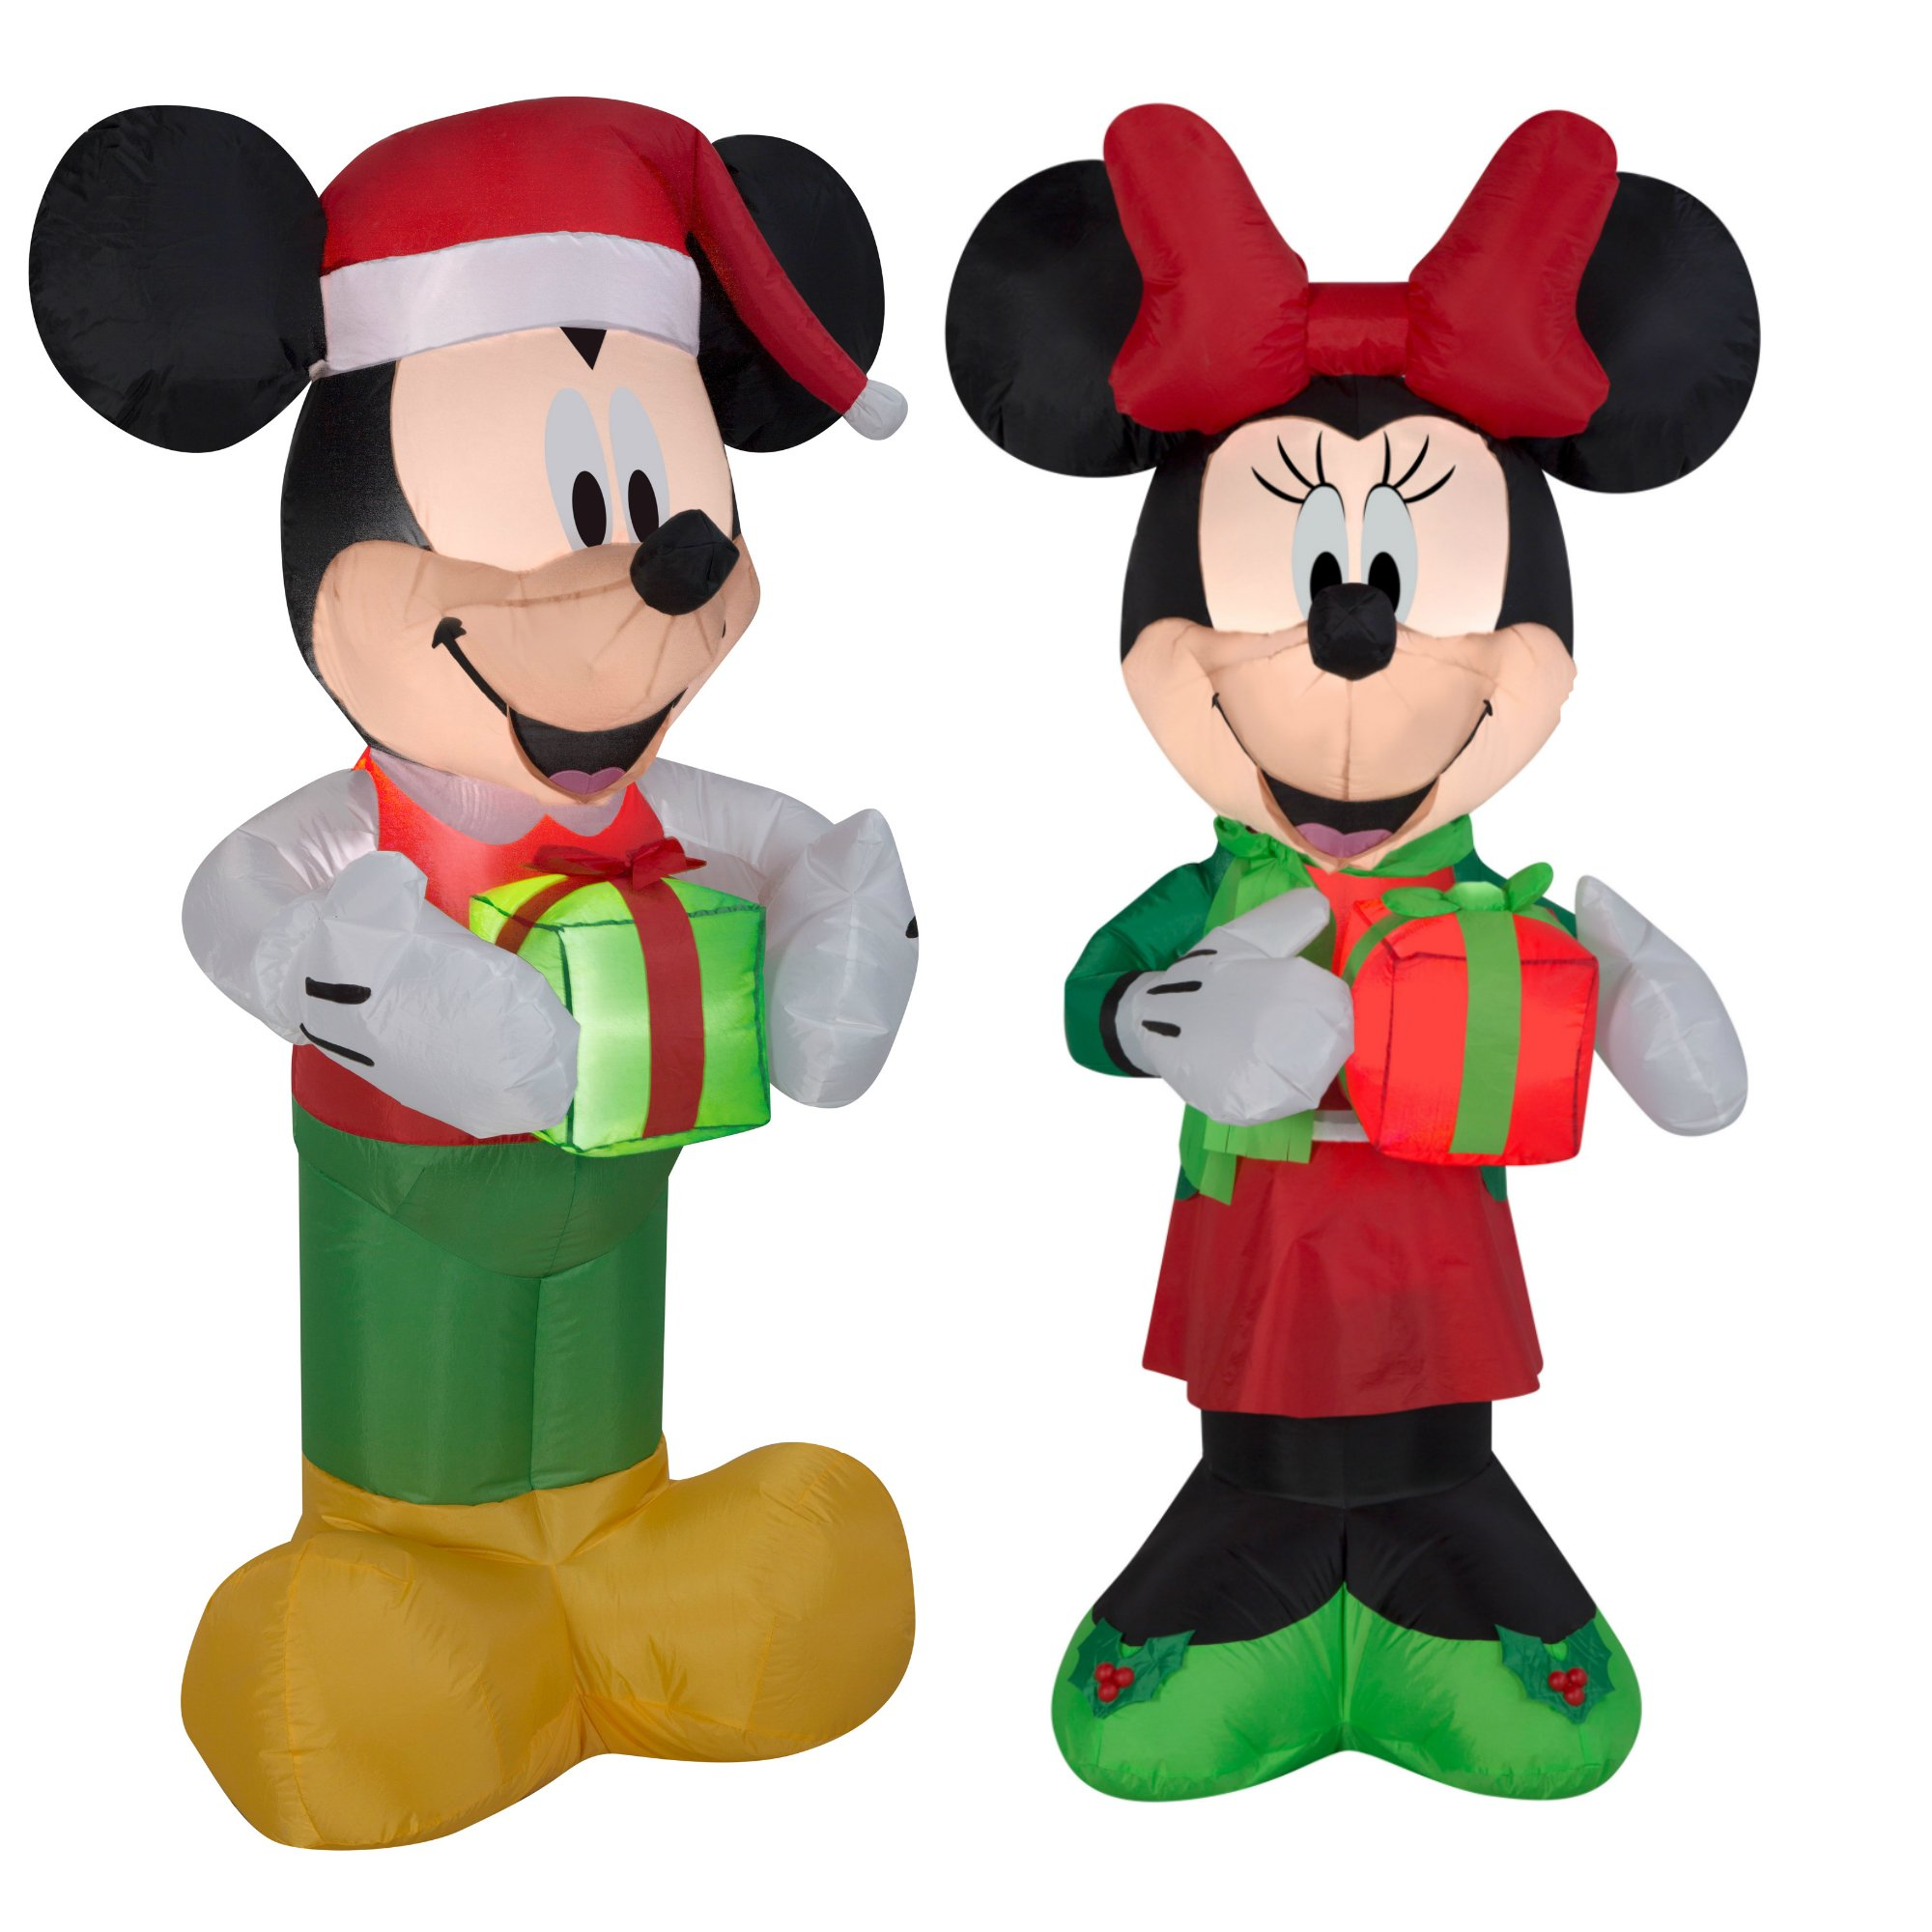 Inflatable Mickey And Minnie Christmas Yard Decorations, 5 Feet Tall, Self Inflatable With Energy Efficient LED